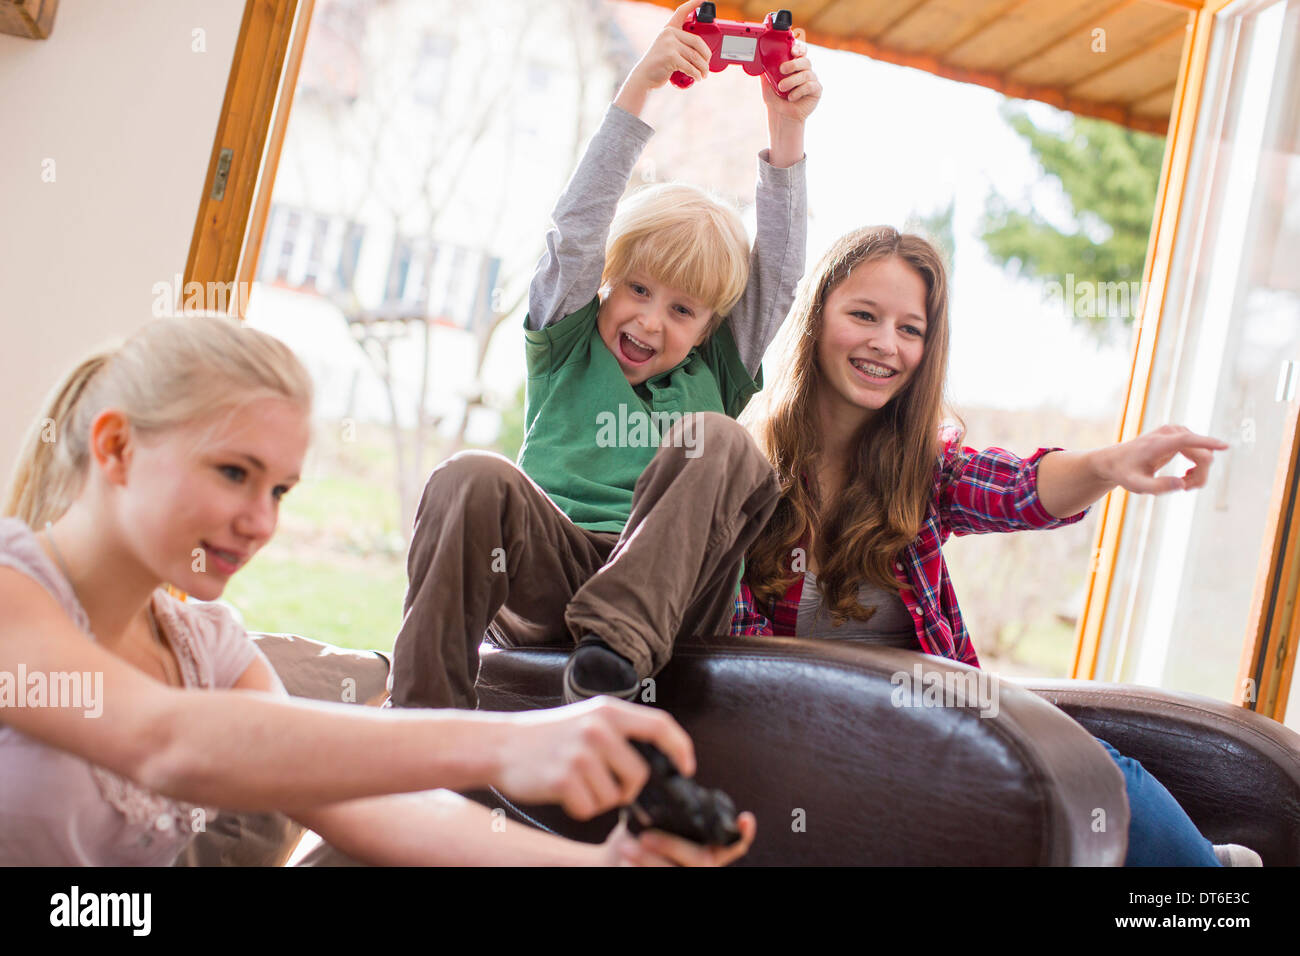 Teenage girls and boy playing games console - Stock Image